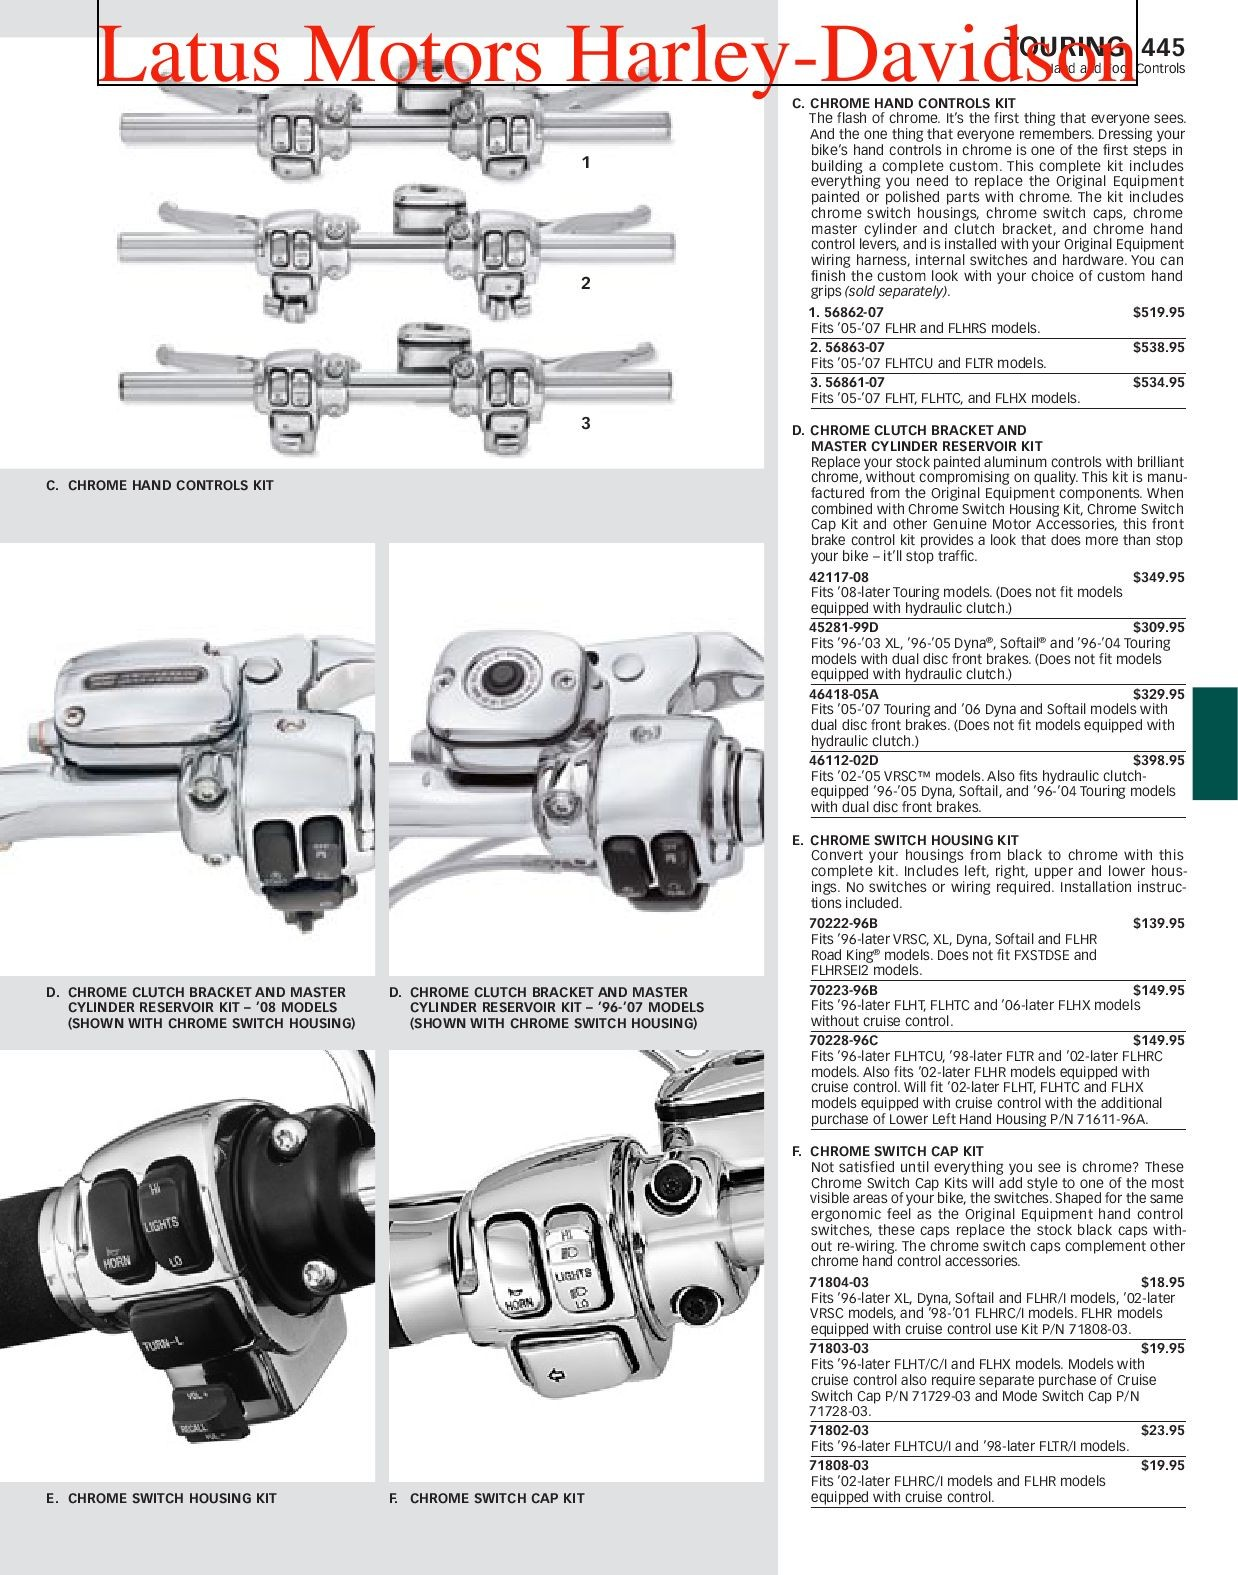 Harley Evolution Engine Diagram Part 2 Harley Davidson Parts and Accessories Catalog by Harley Of Harley Evolution Engine Diagram